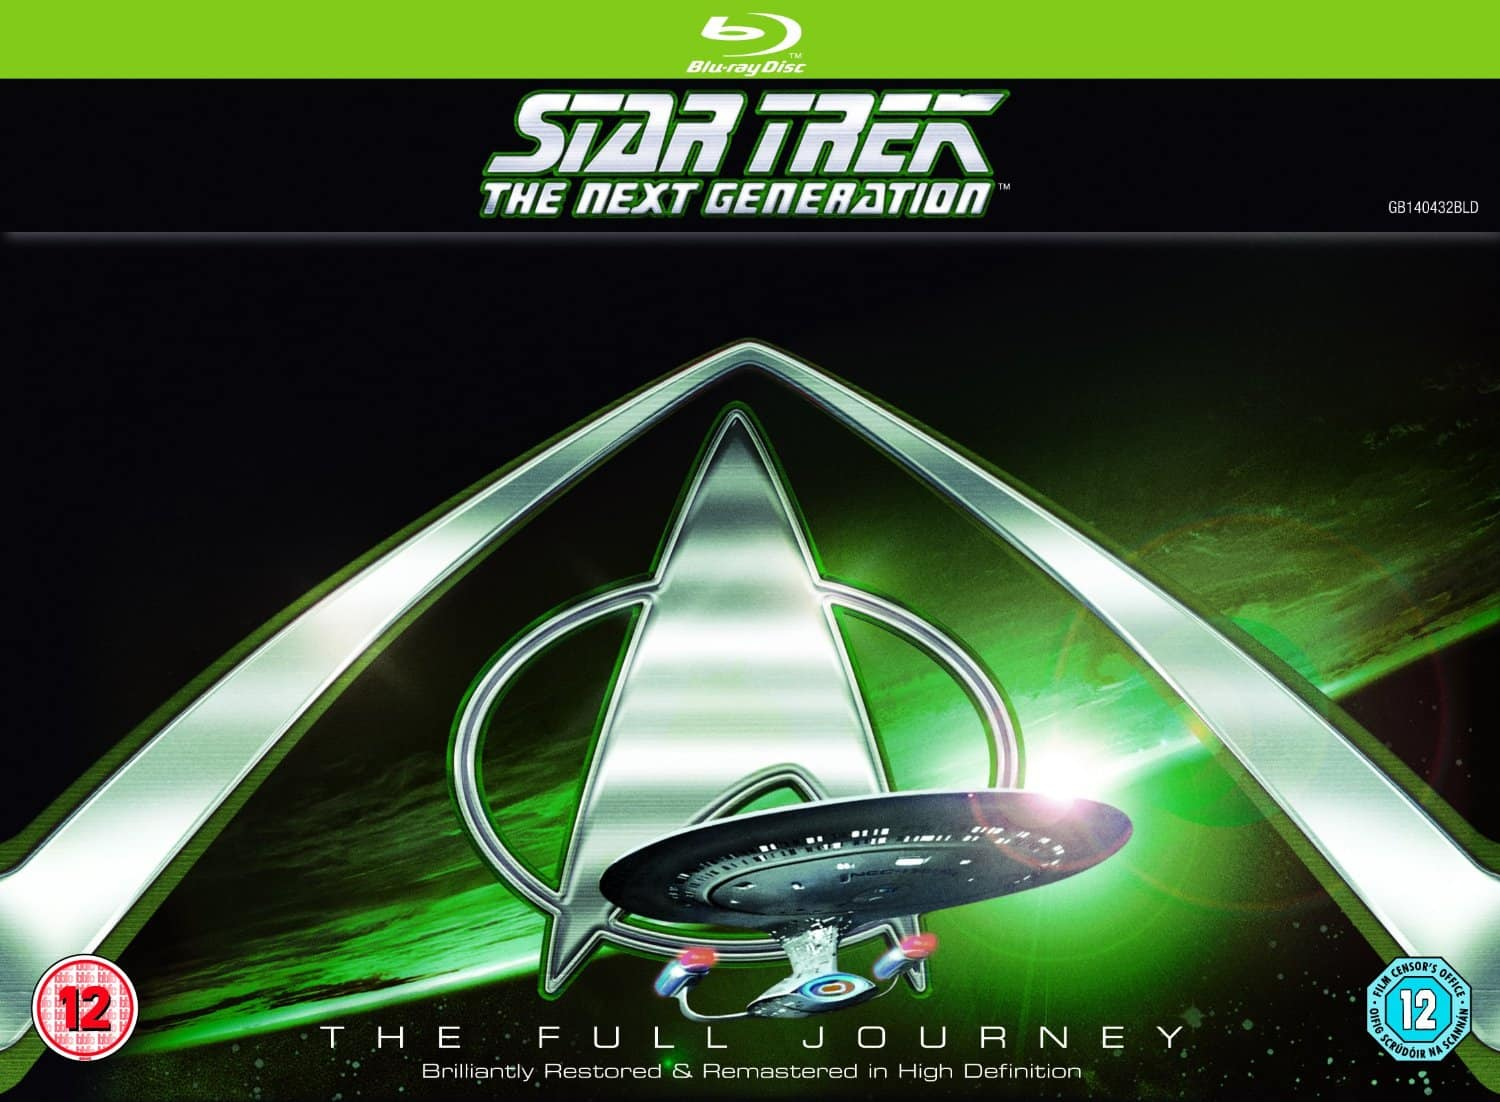 Star Trek: The Next Generation Complete Seasons 1-7 (Blu-ray) $96.33 Shipped